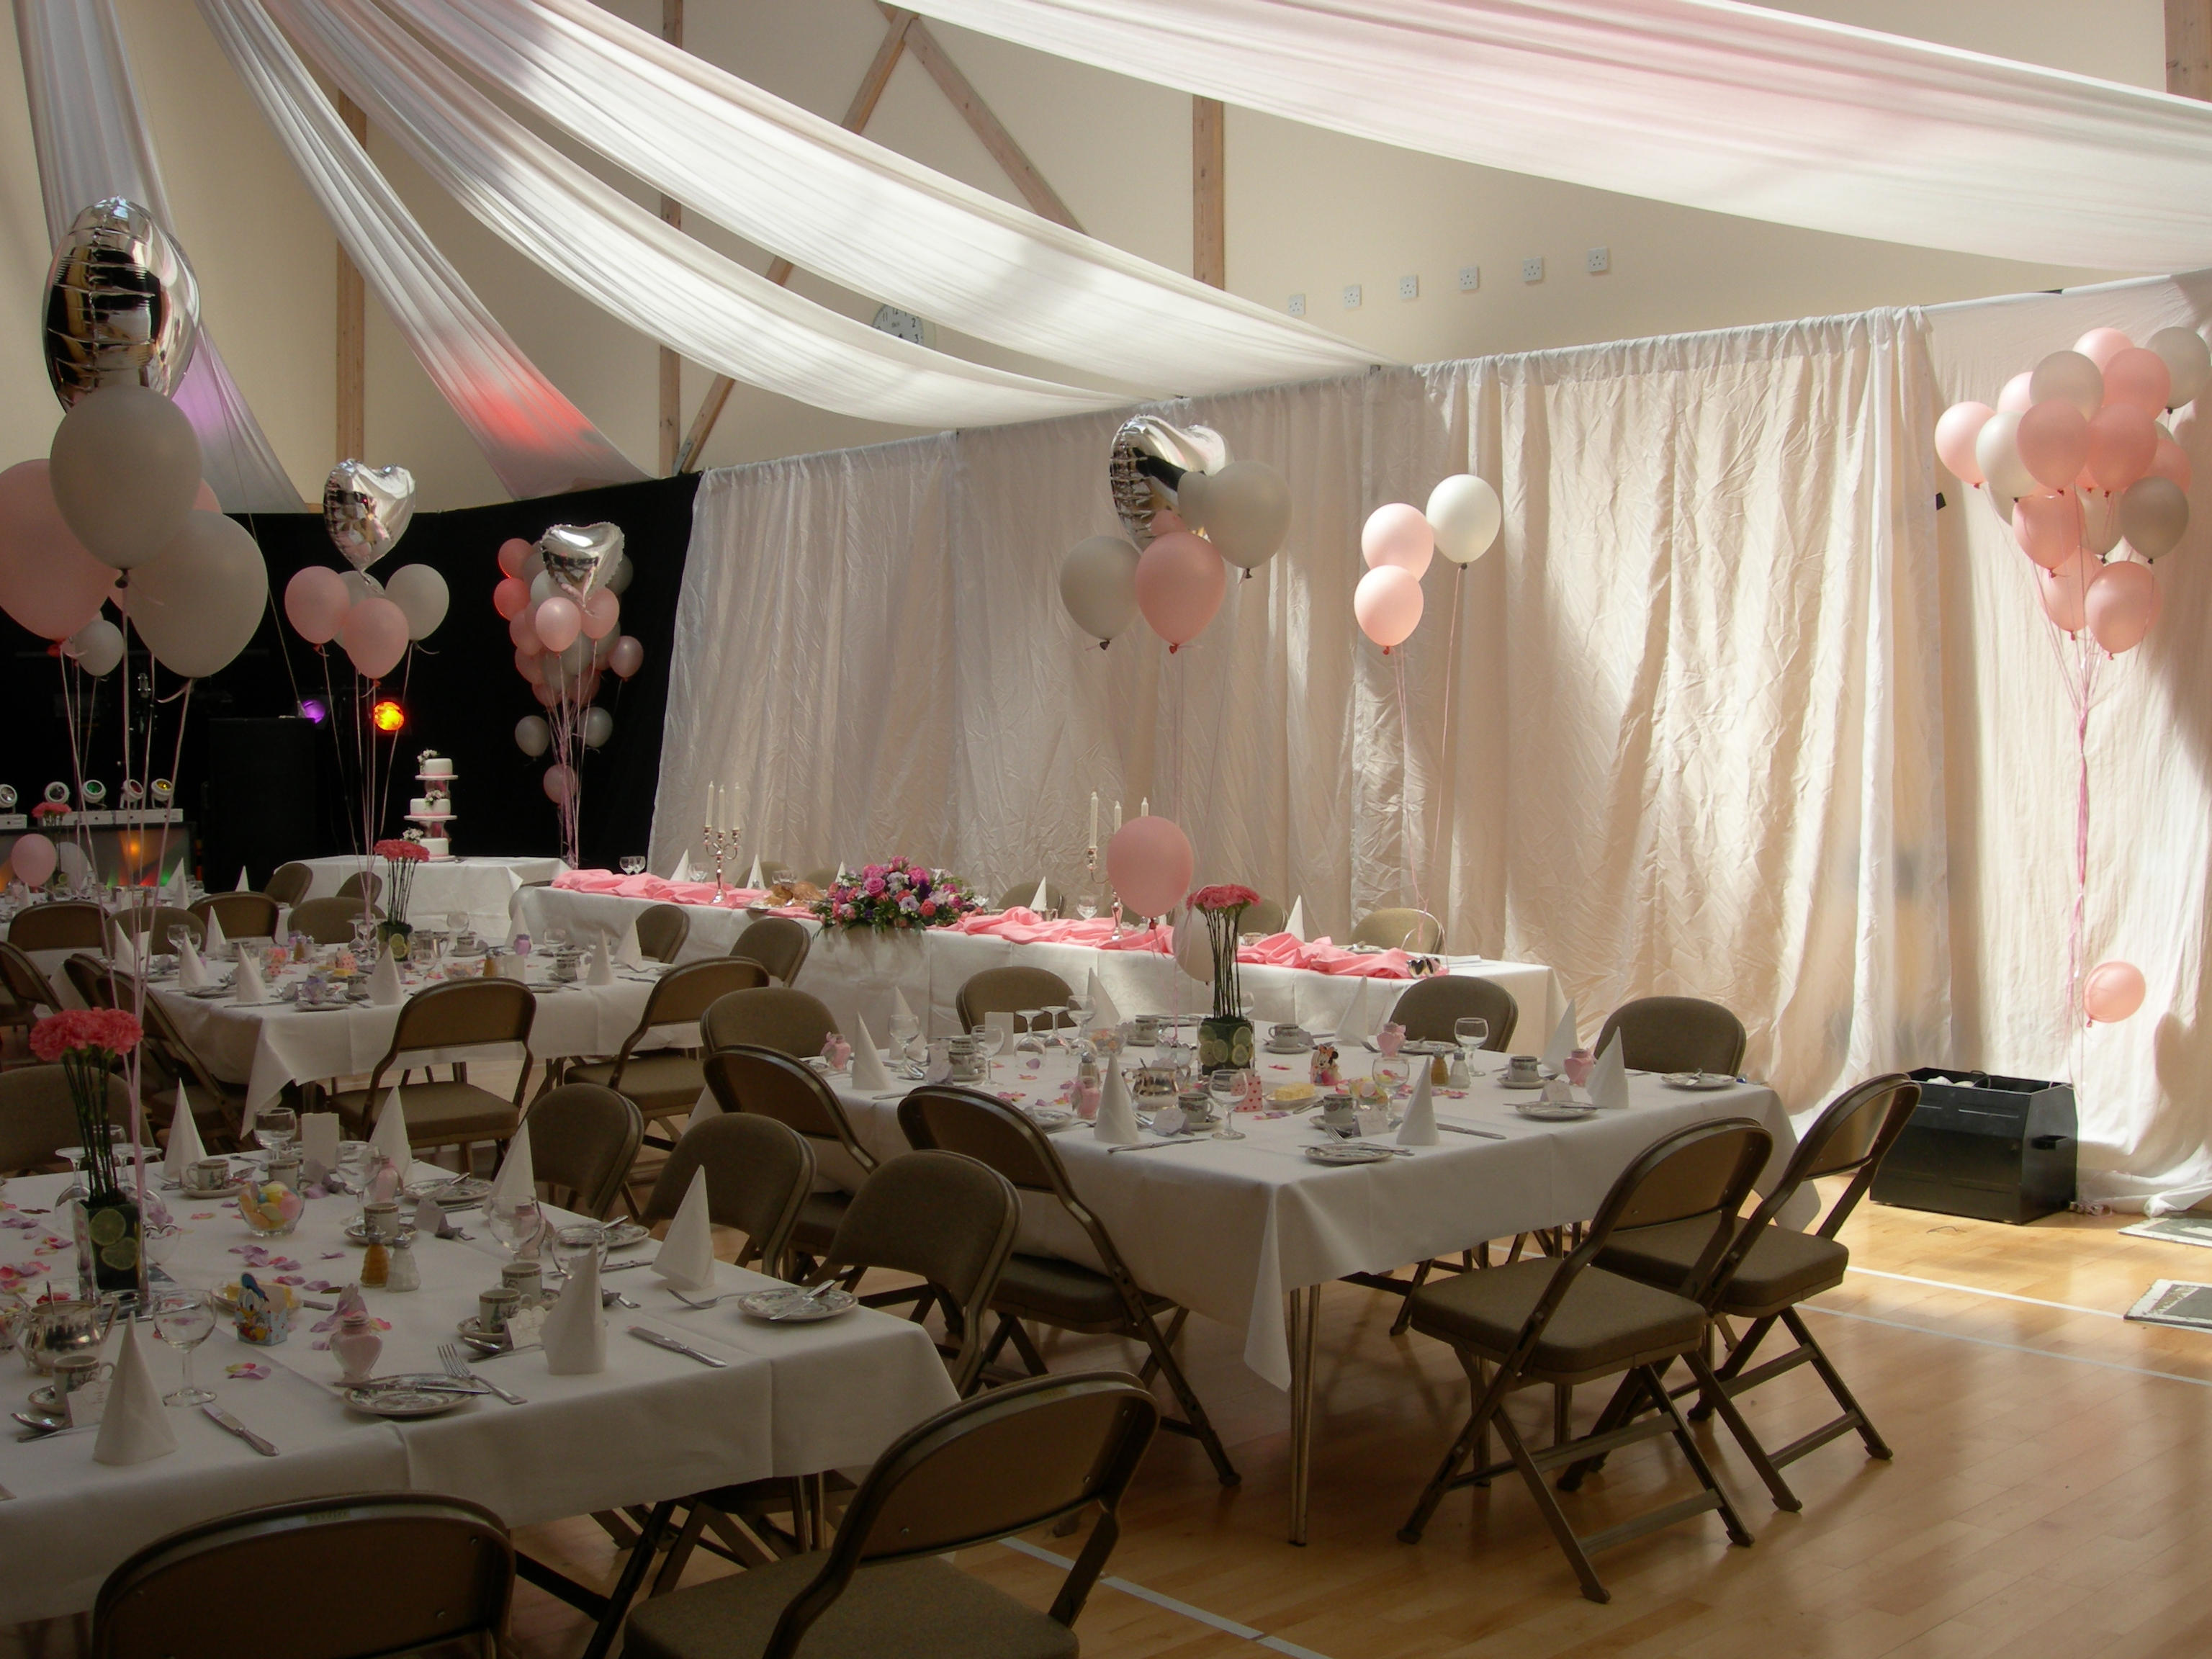 Village Hall Wedding Reception 2